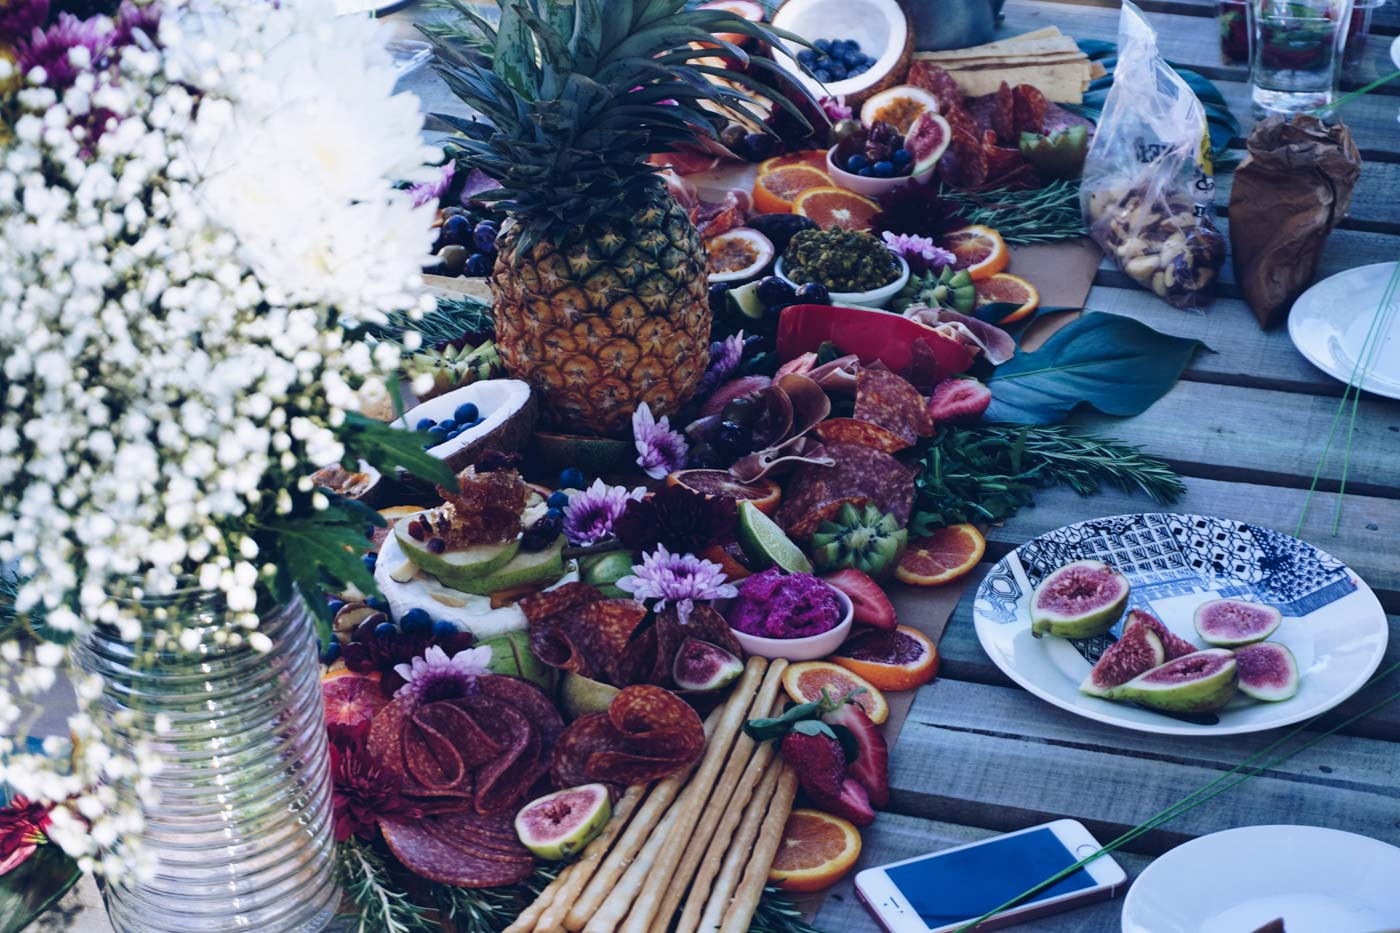 the_Collection_co_grazing_table_cairns_weddings_catering_large_platter-8-2.jpg